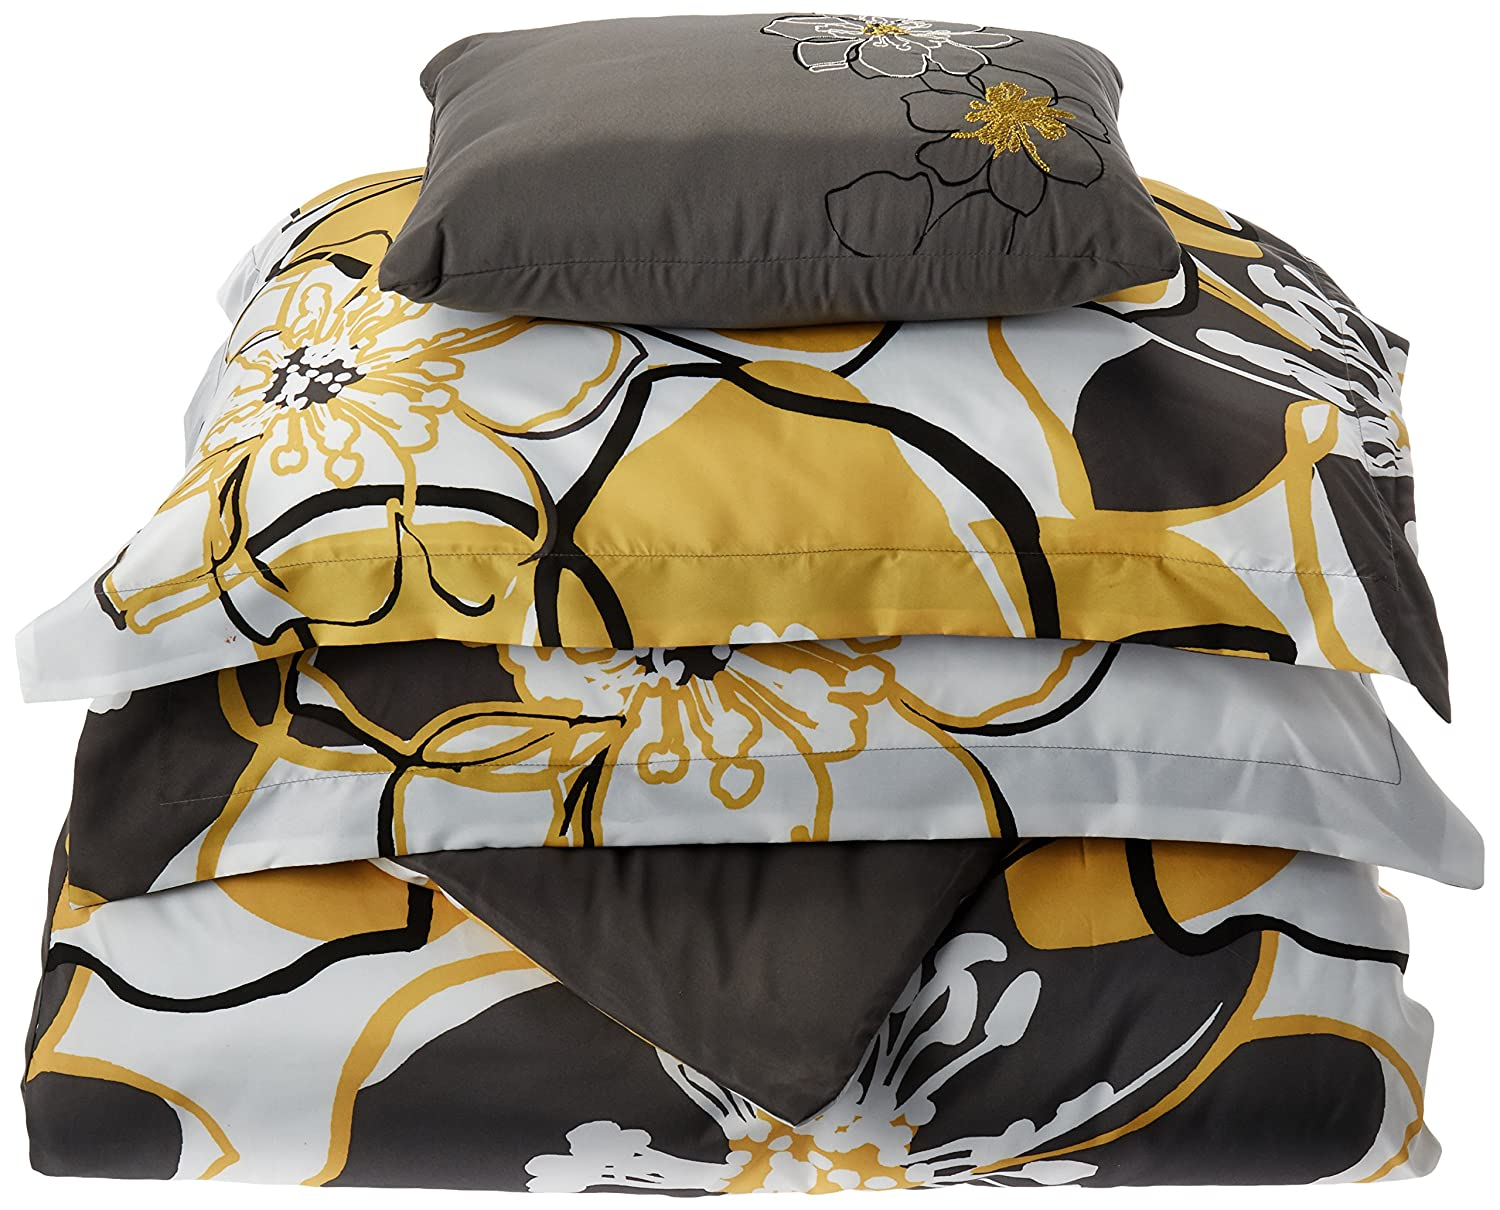 Mizone Allison 4 Piece Duvet Cover Set, Yellow, Full/Queen